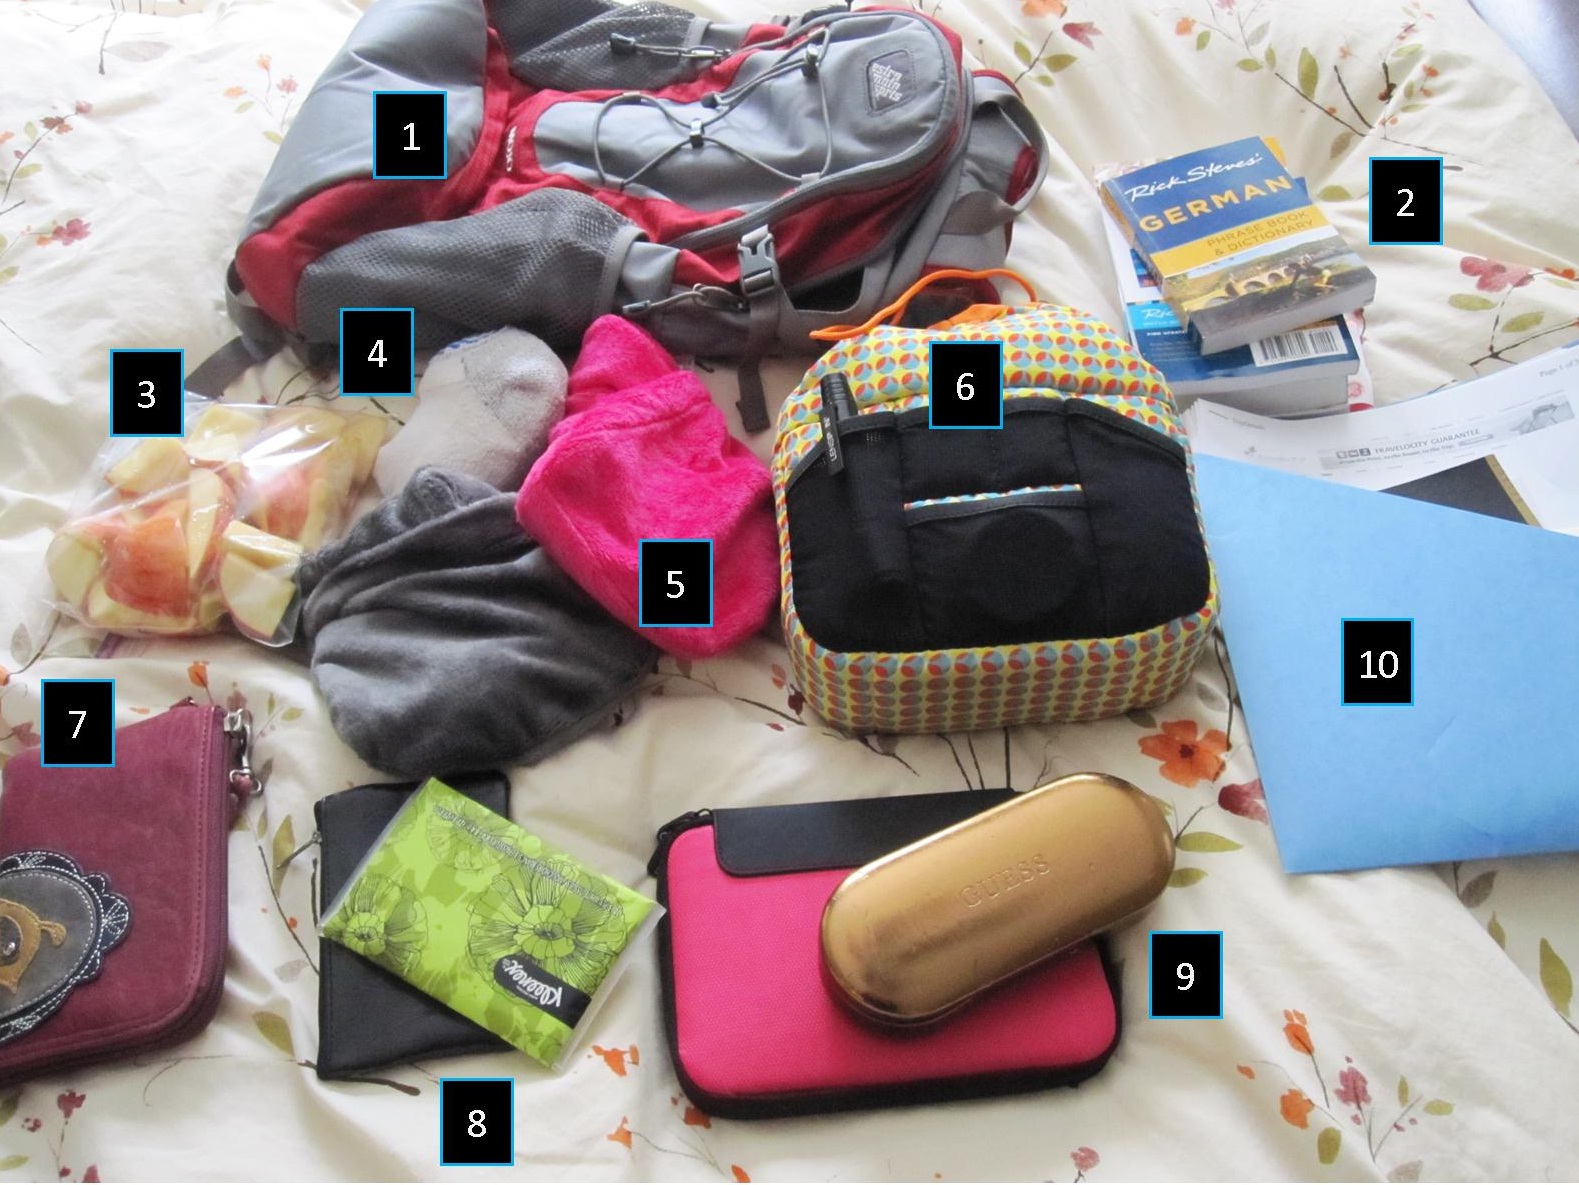 Great This Is Everything That We Took In The Back Pack For The Flight: